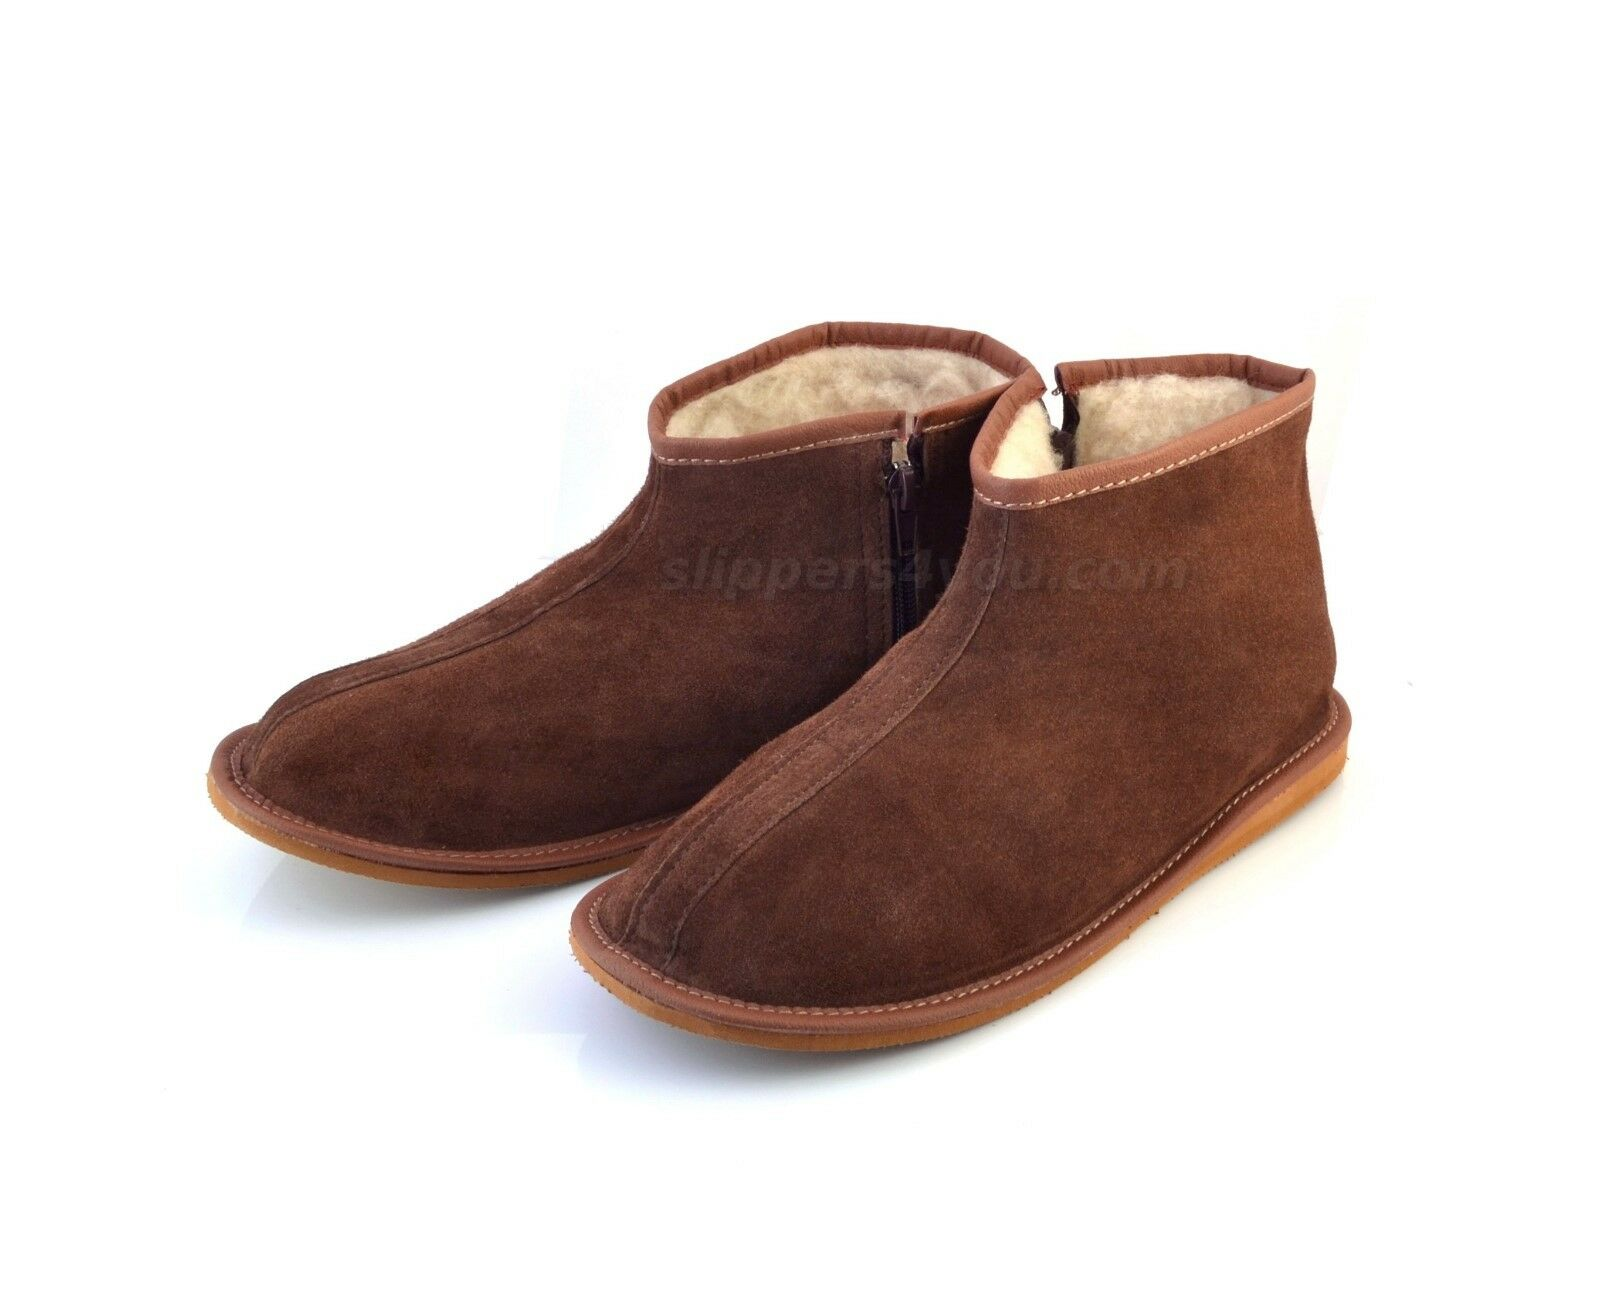 Men's Brown Leather Slippers Shoes Zip Boots Sheep Wool US size 7 8 9 10 11 12